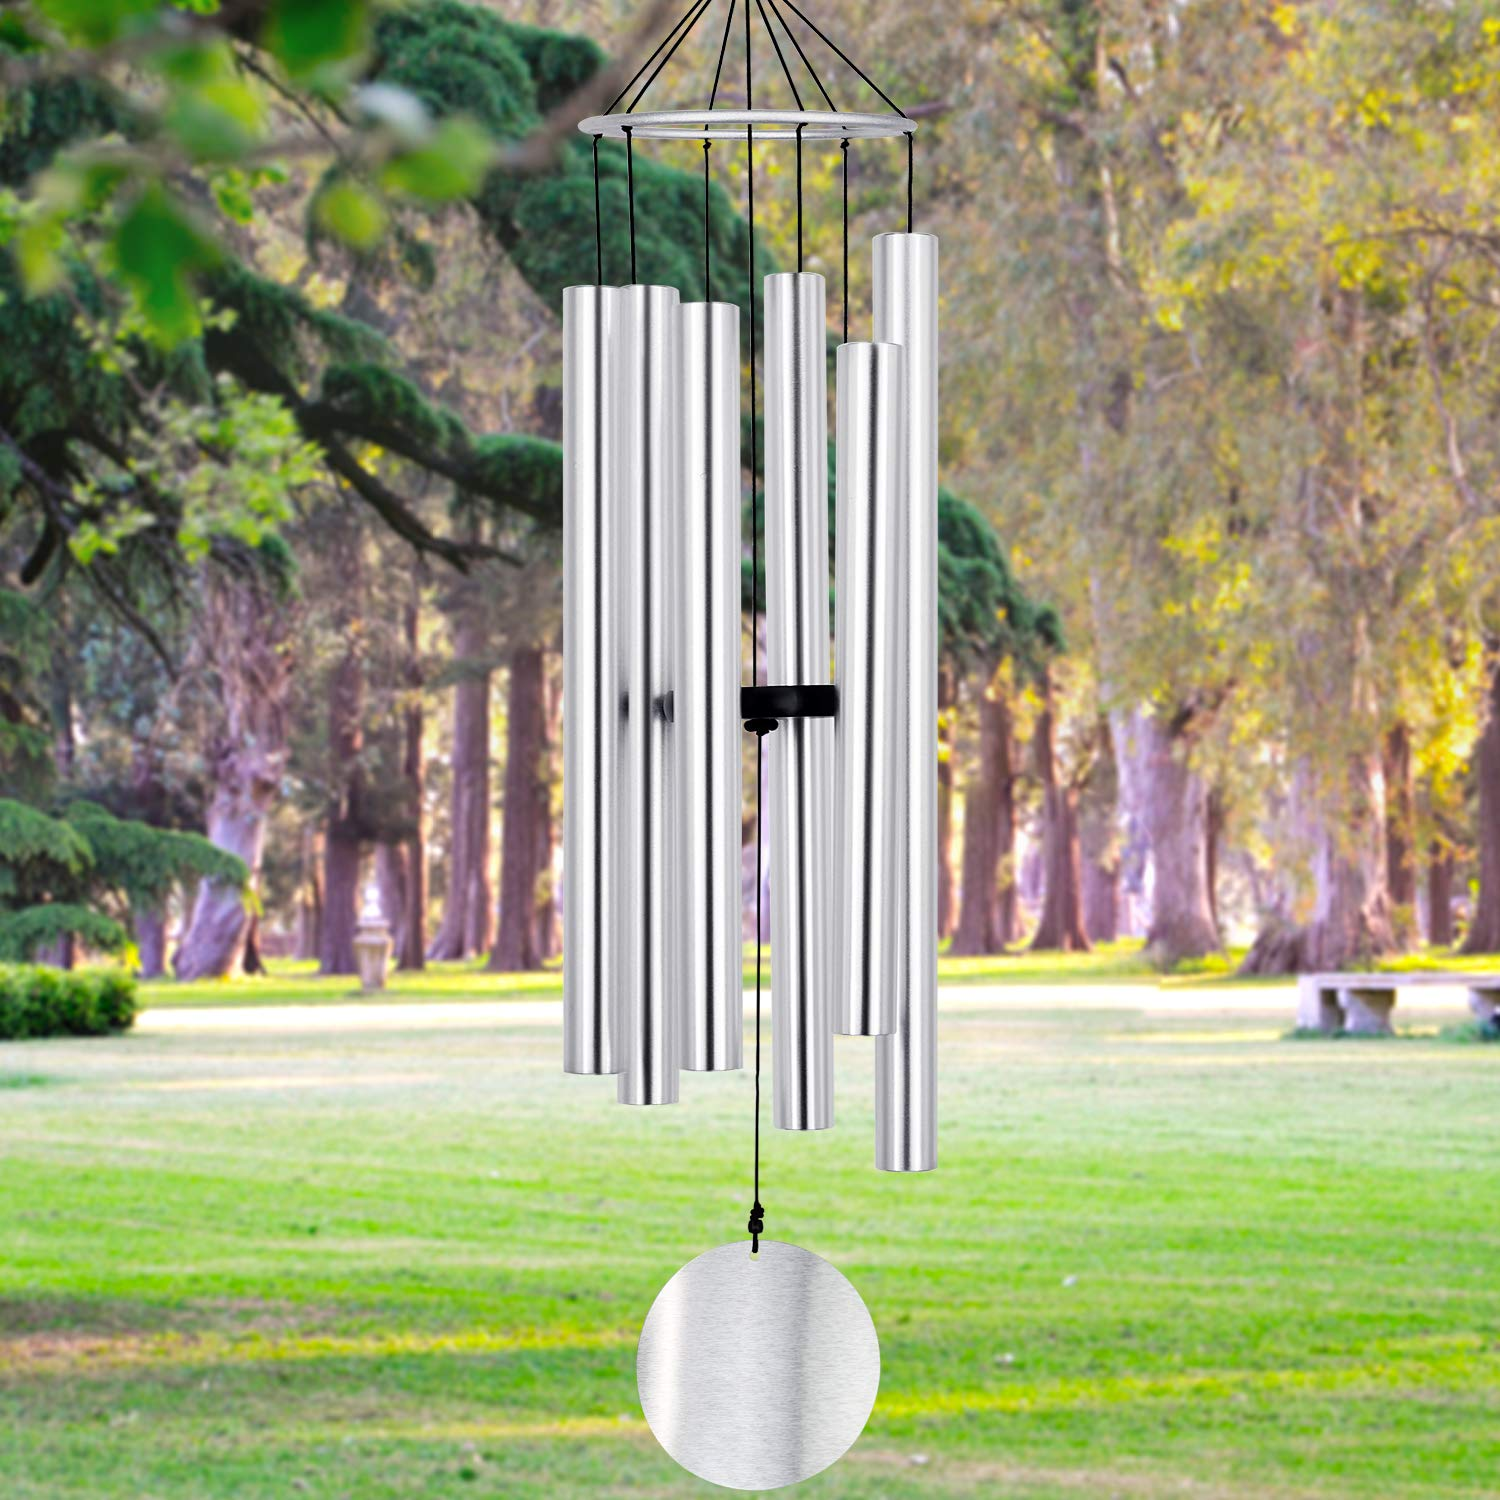 Wind Chimes Outdoor Large Deep Tone, 45'' Amazing Grace Wind-Chimes Memorial with 6 Metal Tuned Tubes, Elegant Chime Soothing Rich Tone for Mom, Decent Gift for Housewarming and Christmas (Silver)